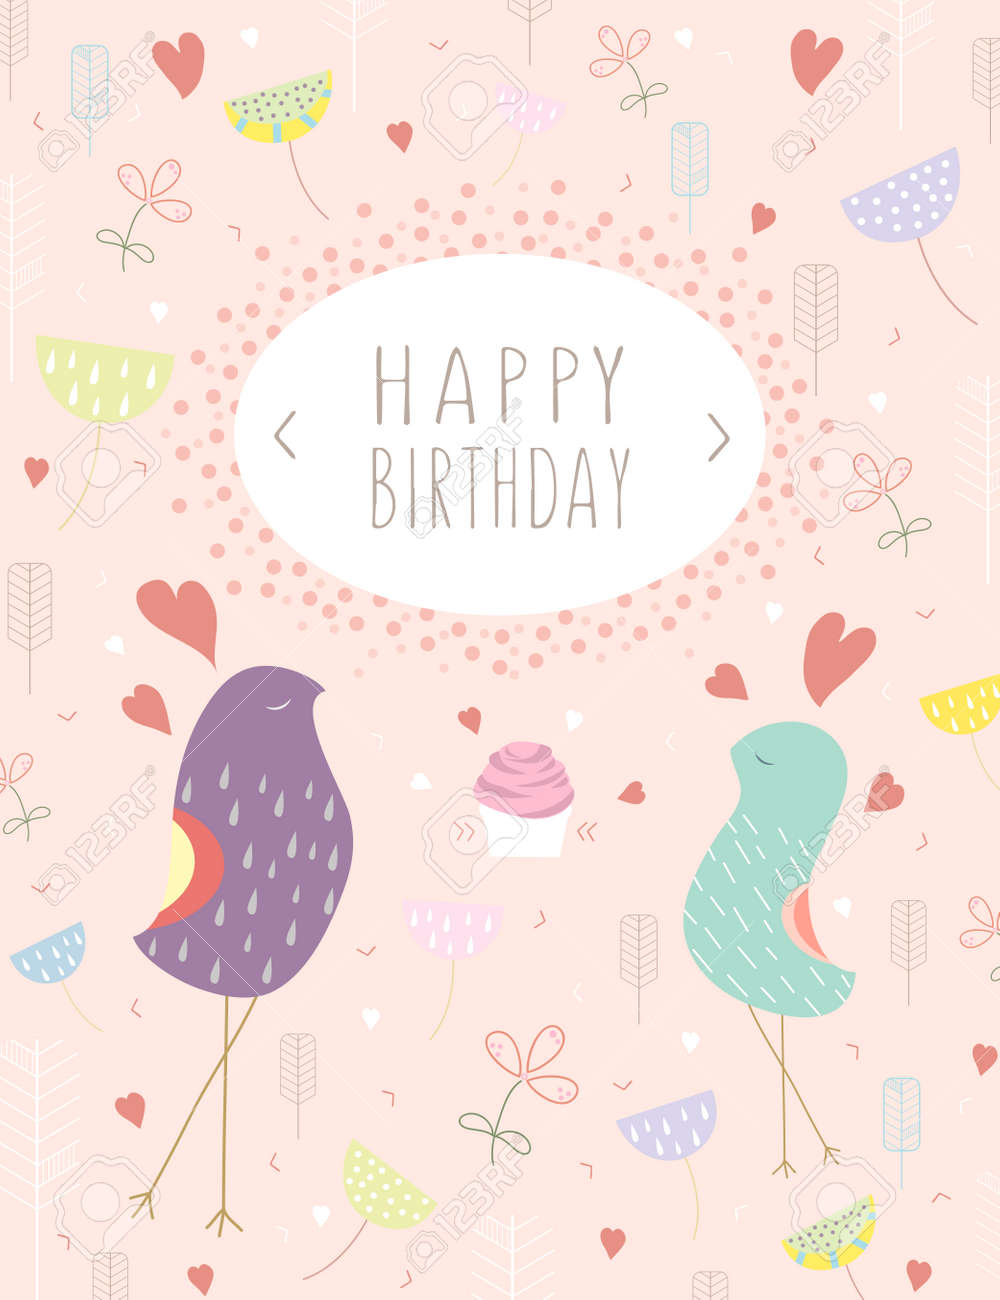 Template happy birthday card greeting template card with birds template happy birthday card greeting template card with birds cake and hearts on pink background bookmarktalkfo Choice Image